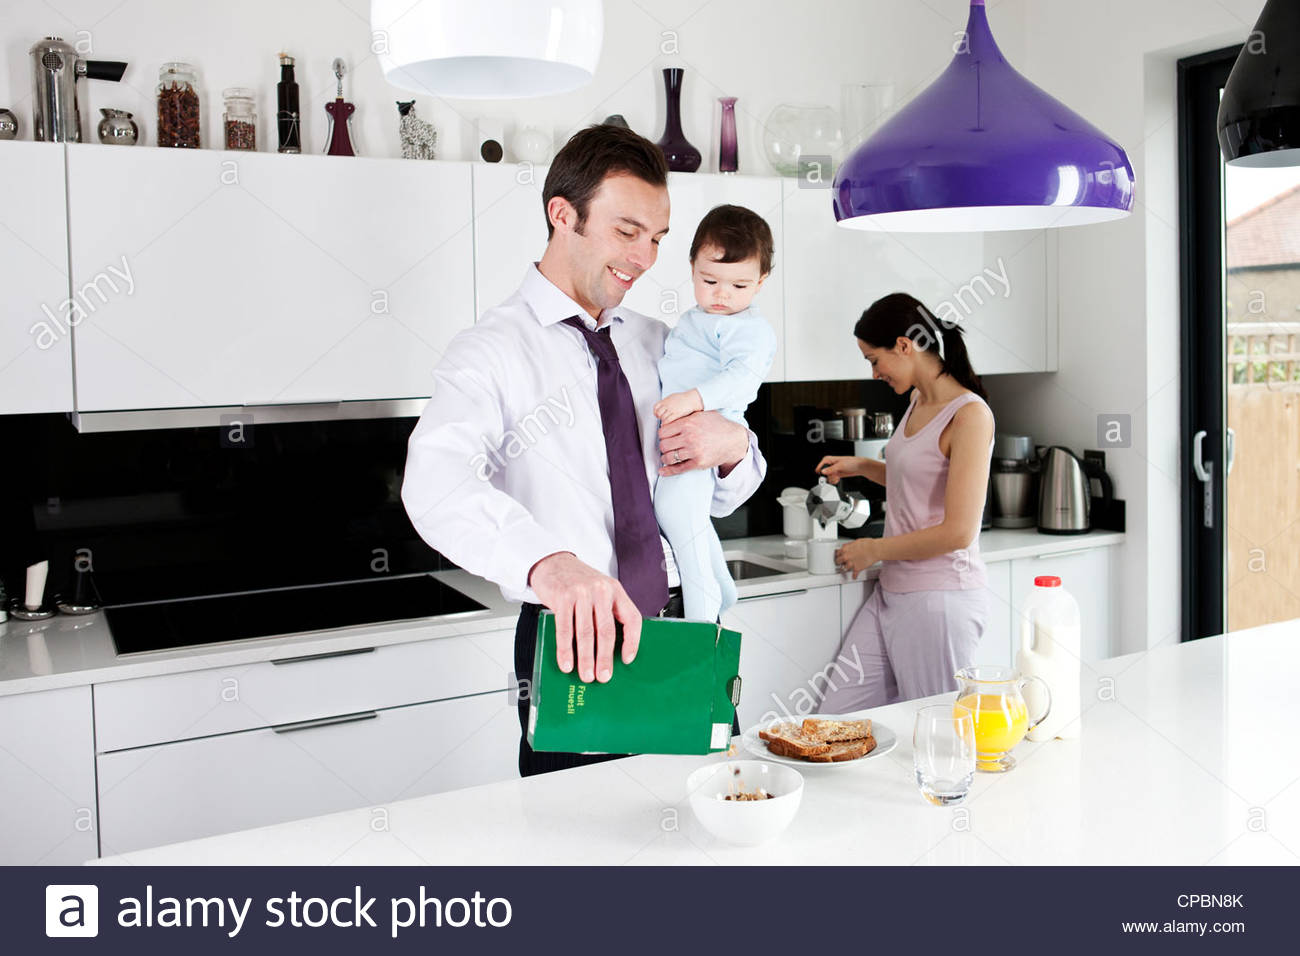 A father holding his baby son whilst making breakfast - Stock Image